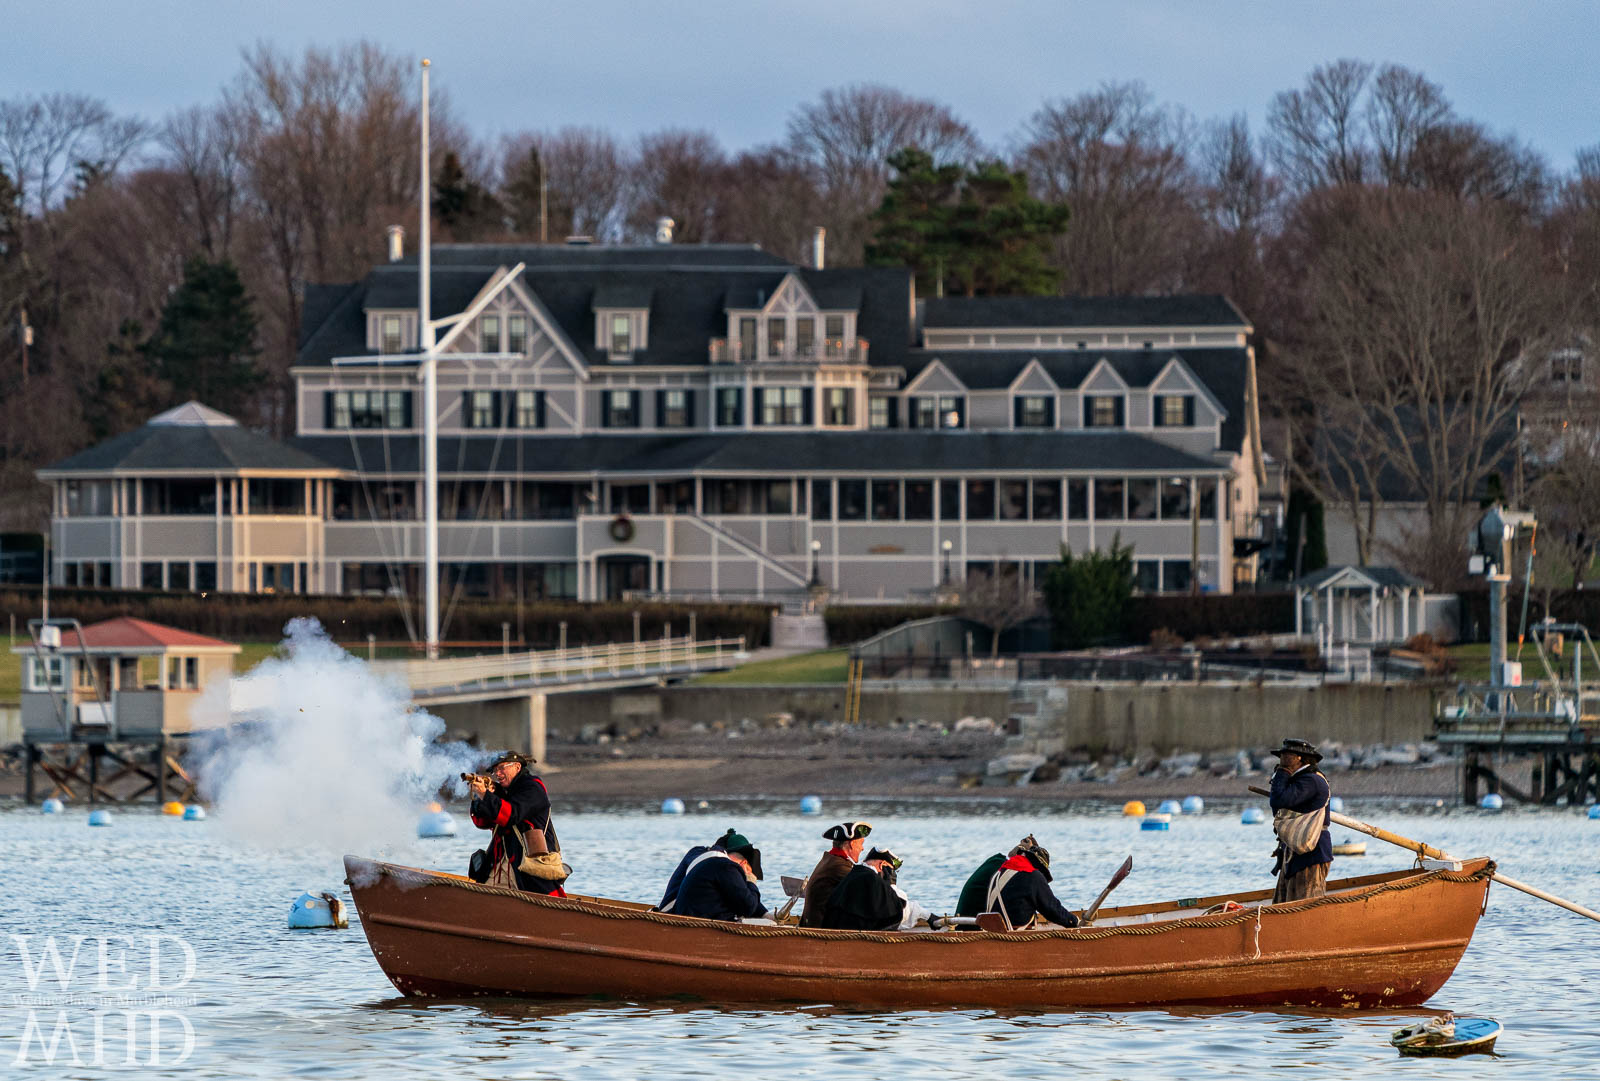 Glover's Regiment appears to become guardians of the Eastern Yacht Club as they fire during the annual Delaware crossing reenactment